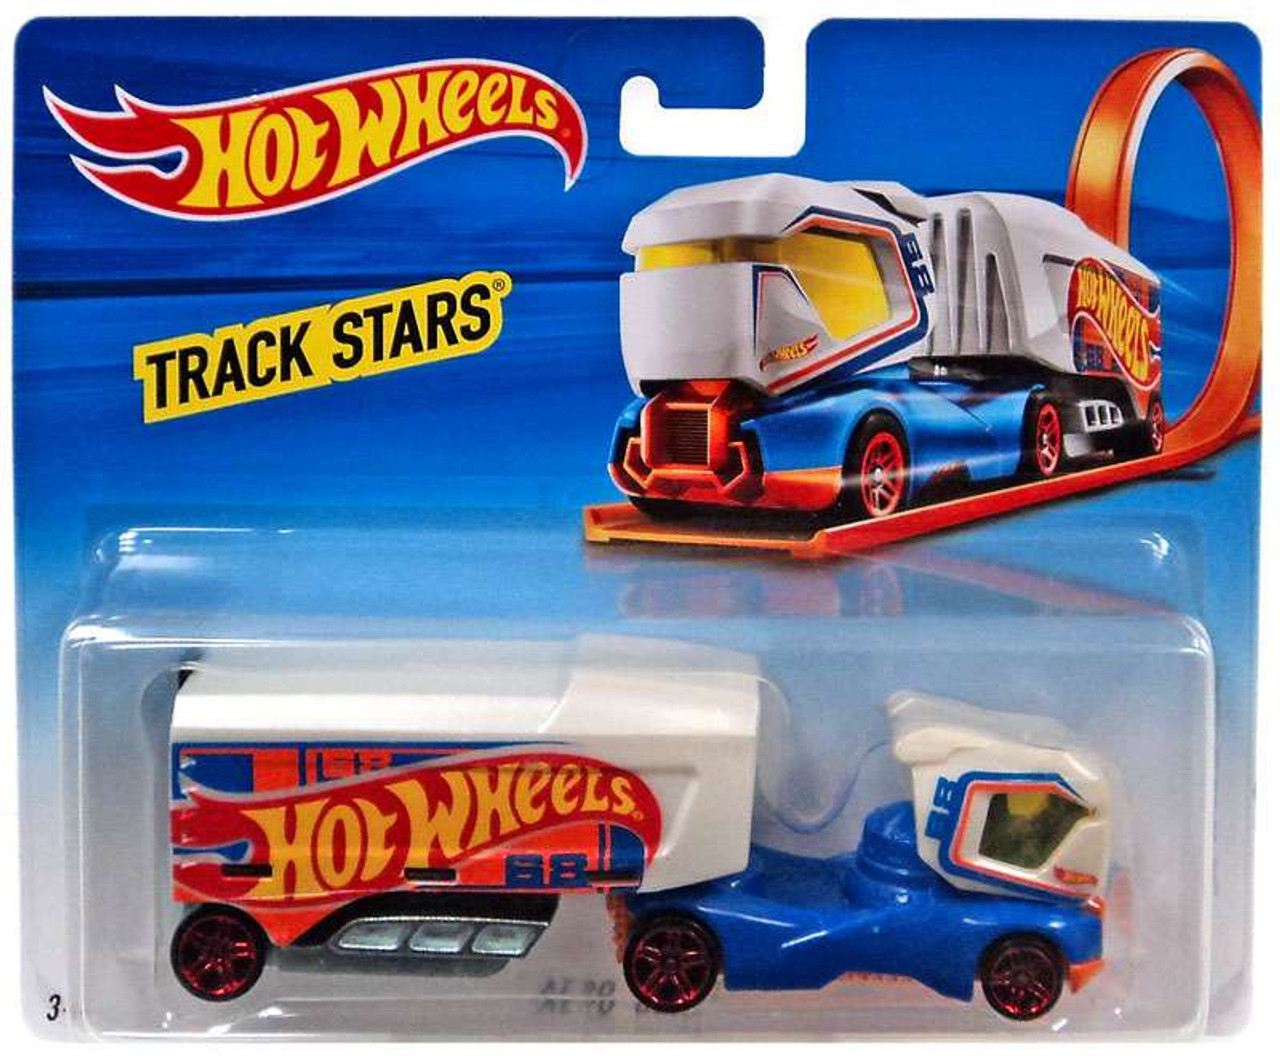 Hot Wheels Track Stars Aero Blast 164 Die Cast Car Mattel